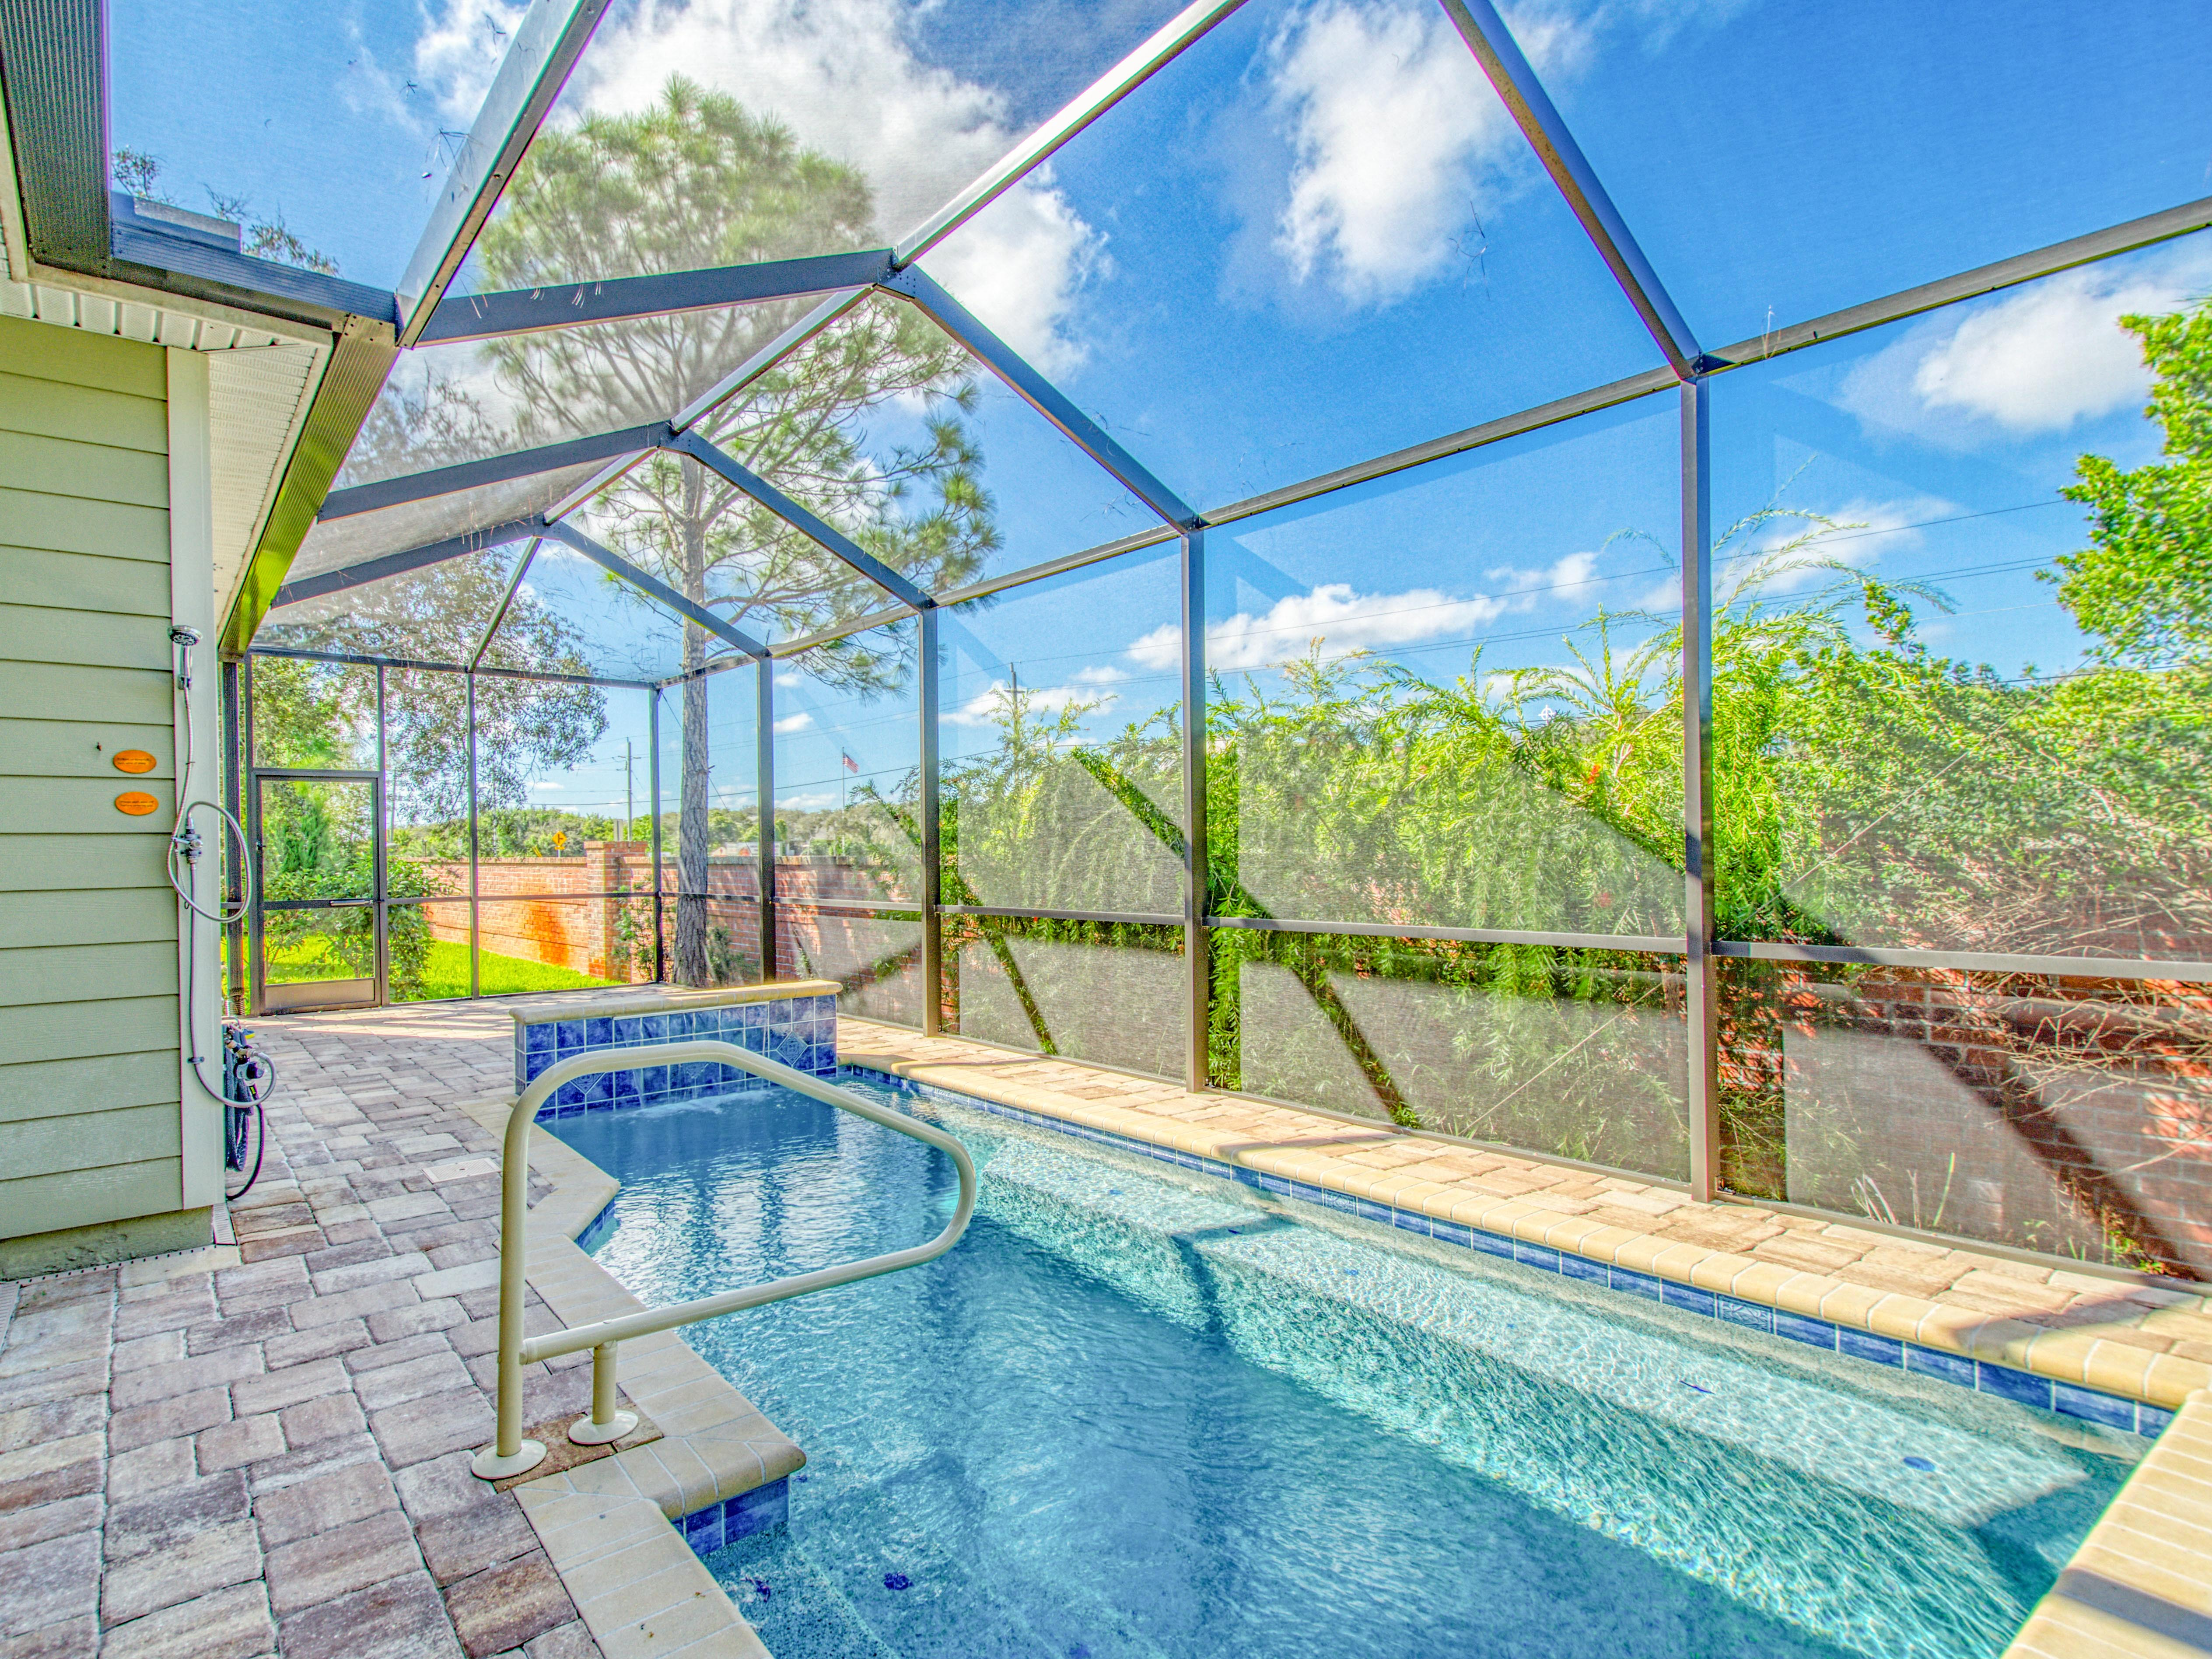 St. Augustine FL Vacation Rental Welcome to Saint